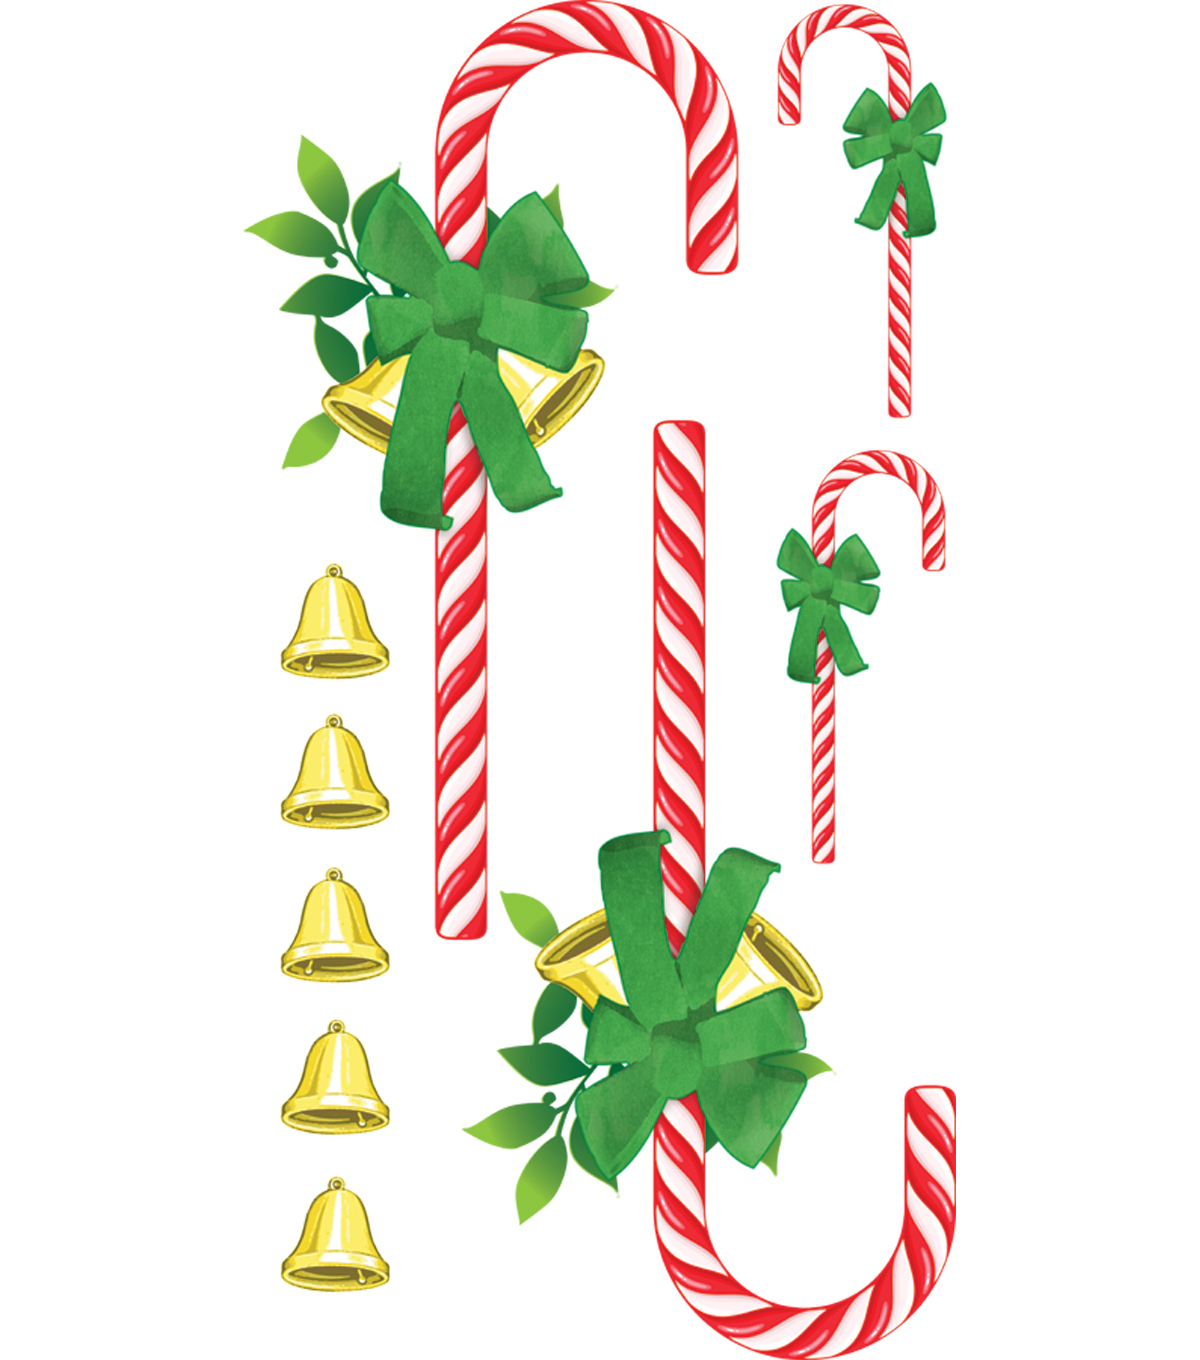 Wall Art Candy Canes W/Bells R